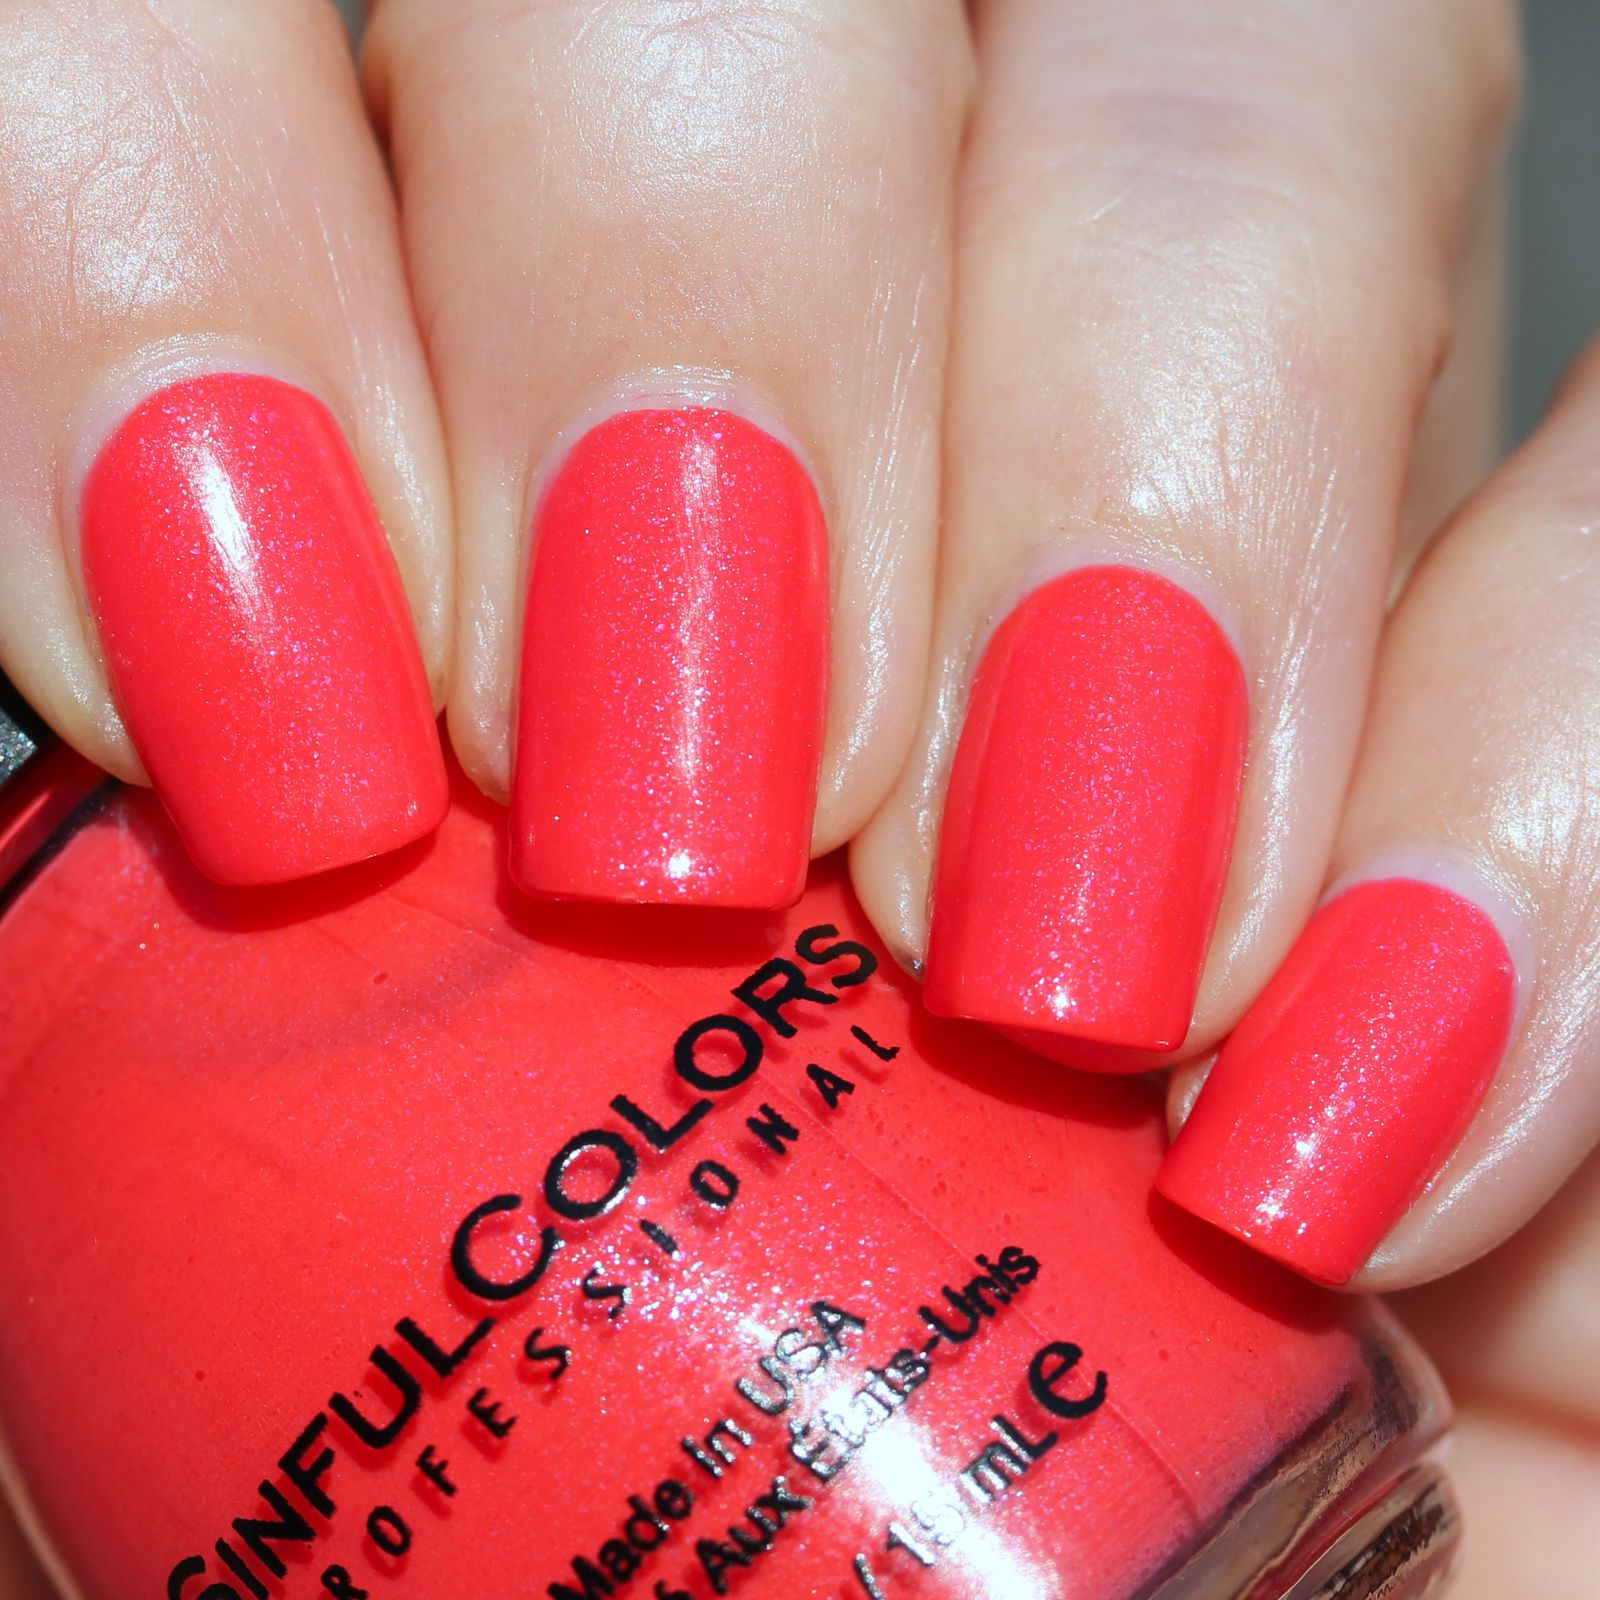 Essie Protein Base Coat / Sinful Colors Coral Riff / Sally Hansen Miracle Gel Top Coat